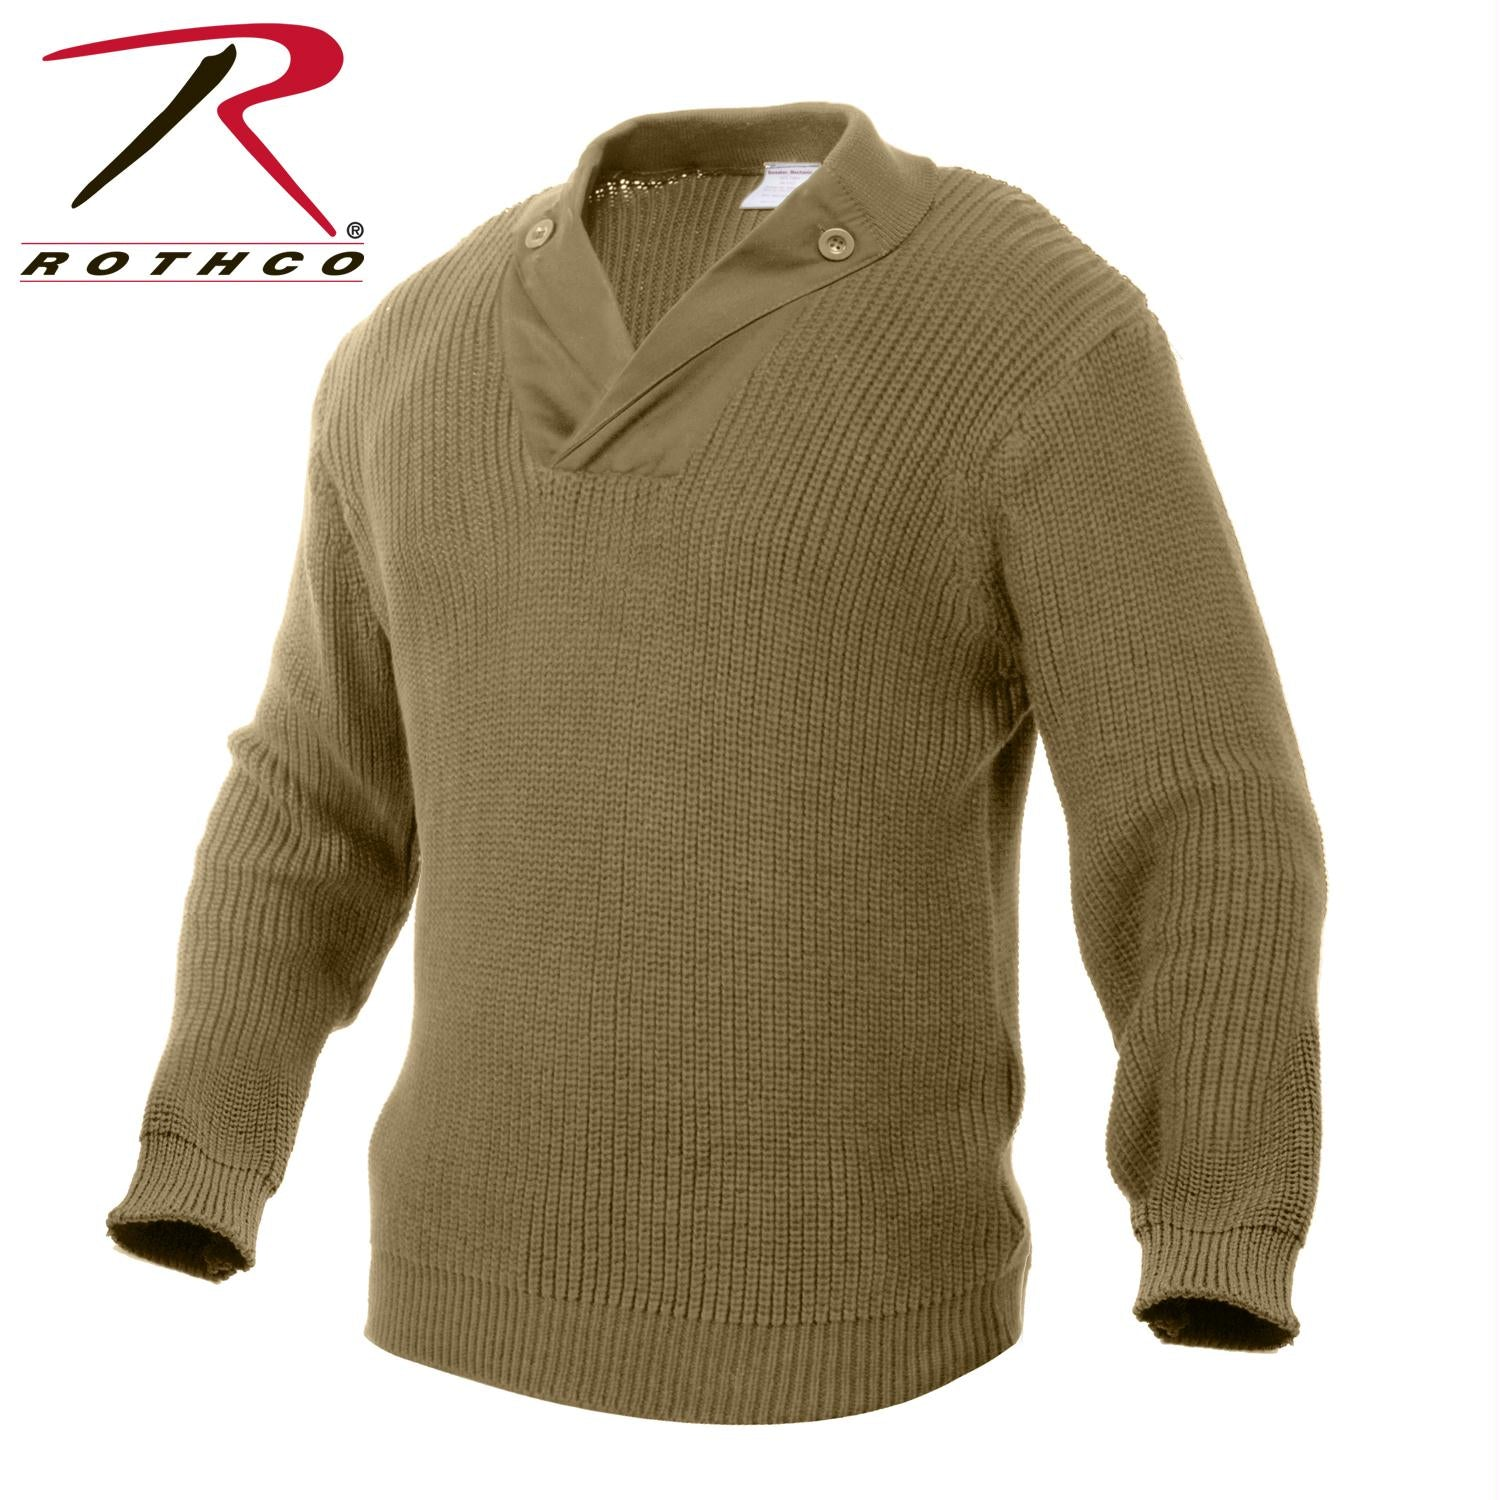 Rothco WWII Vintage Mechanics Sweater - Khaki / M